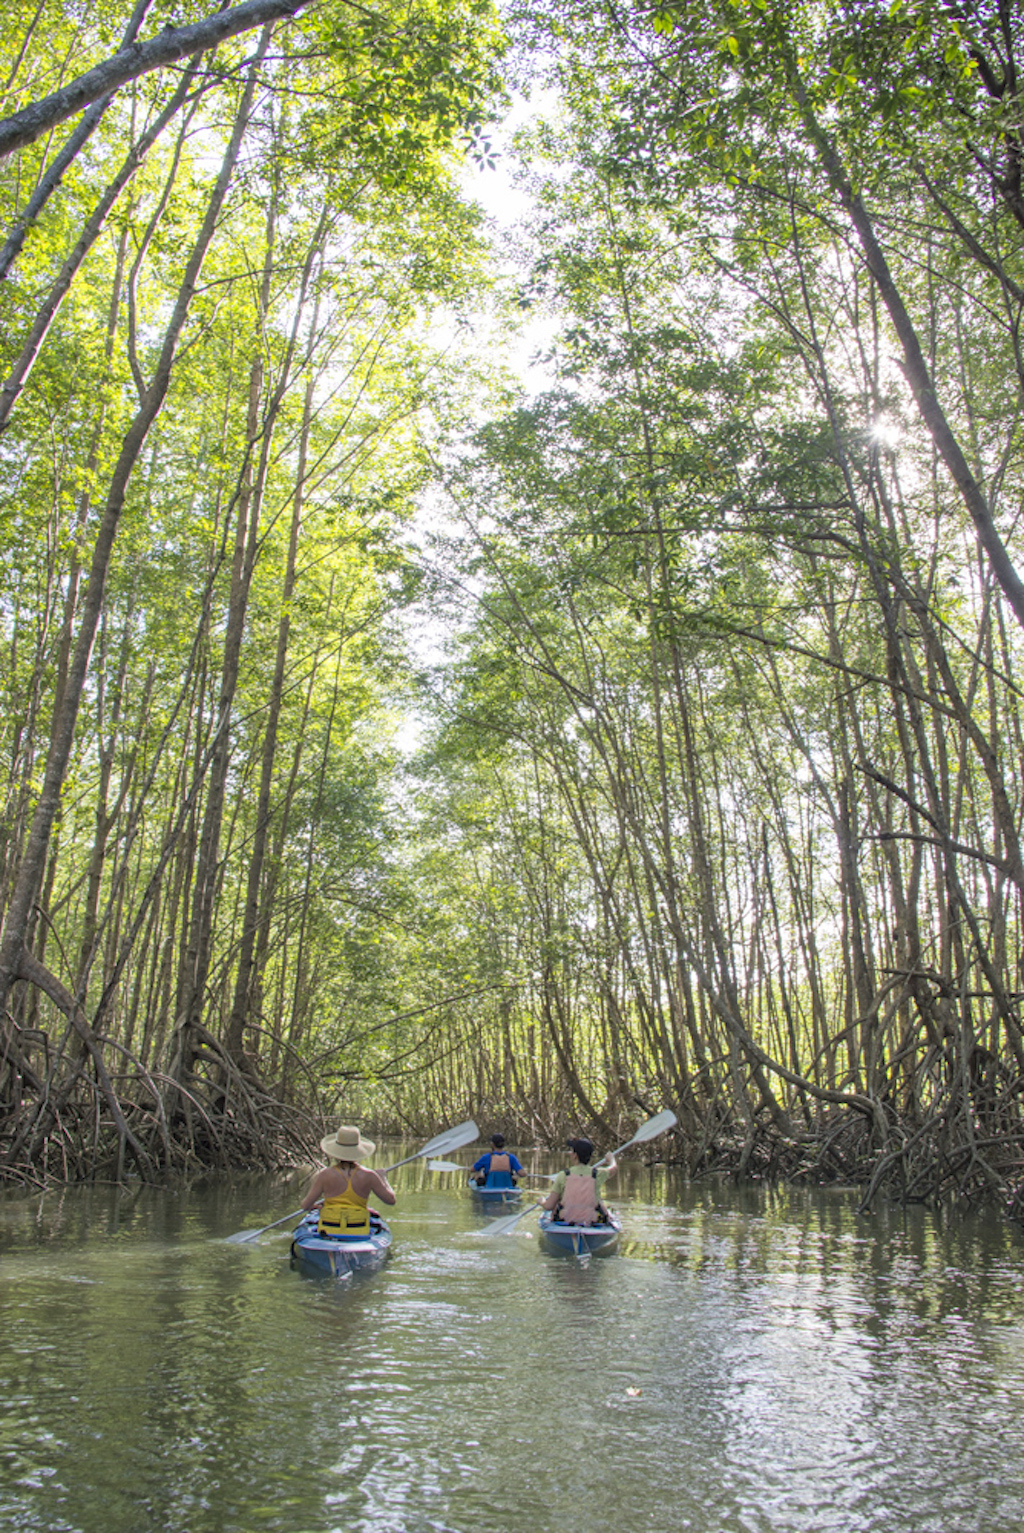 A tranquil tour of the mangrove forests | © James Anderson/Tartar Group